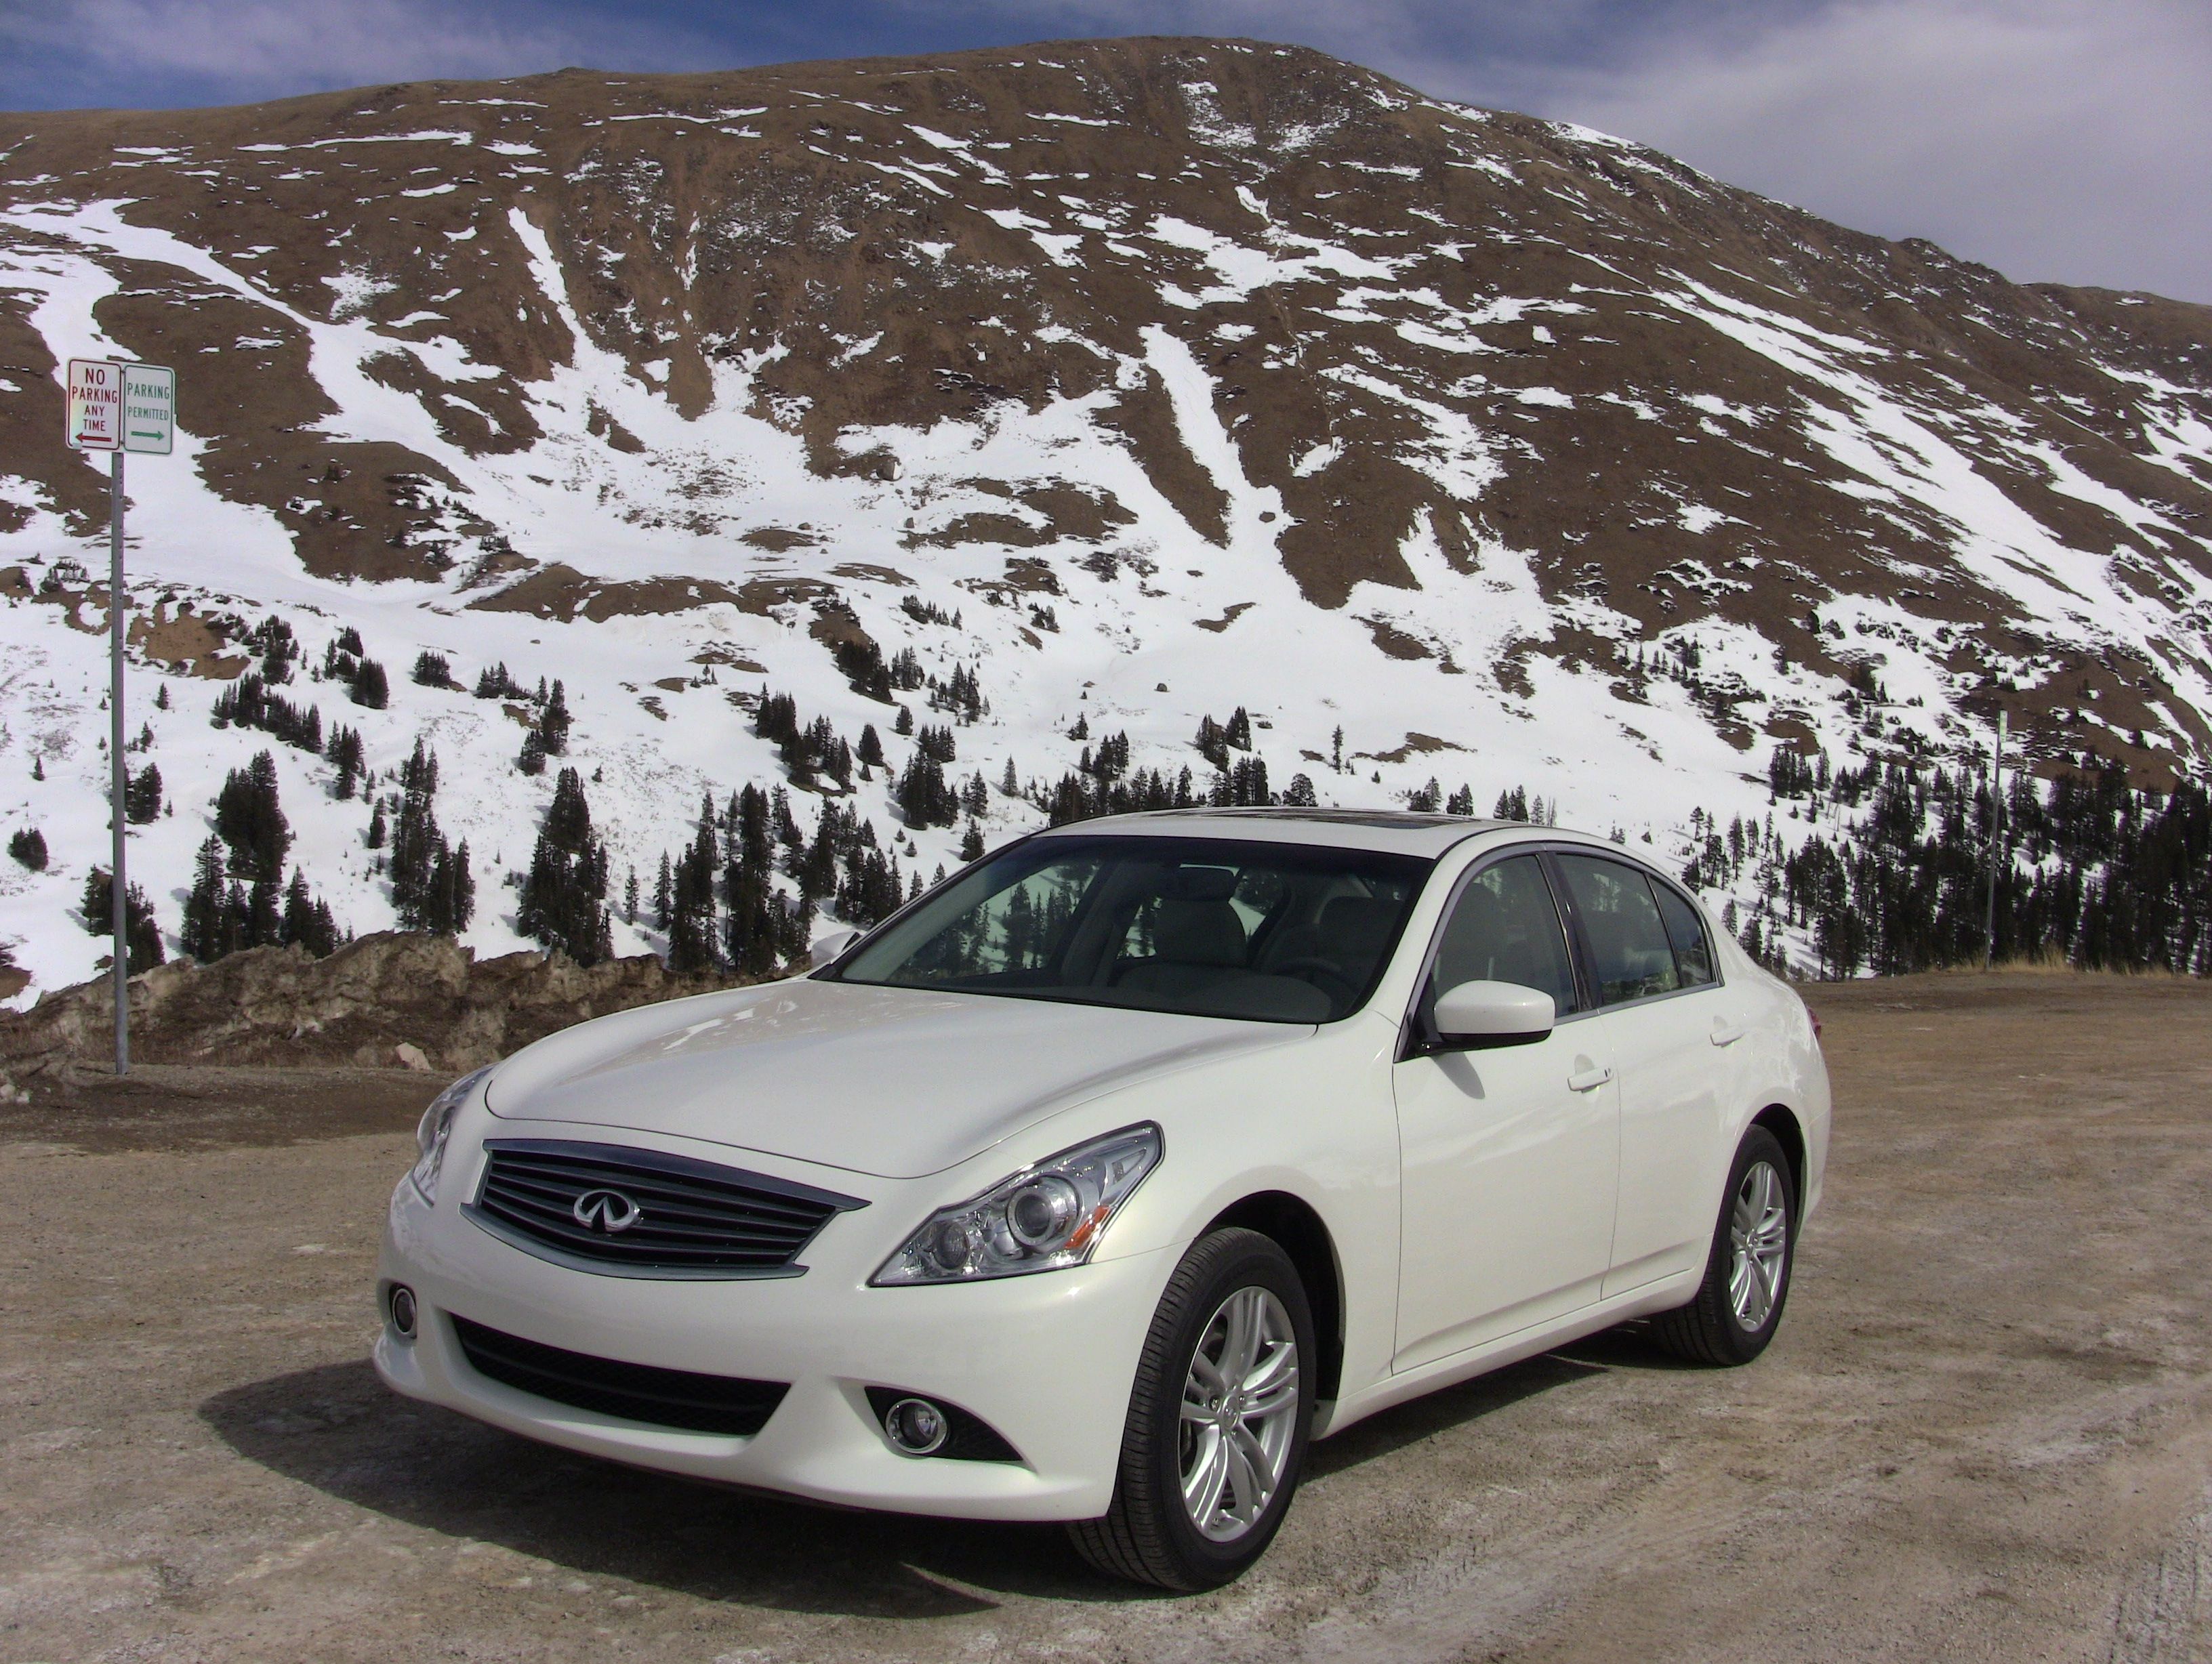 The 2017 Infiniti G25x Drive Could Be Perfect Colorado Car With All Weather Wheel And Plenty Of Room For Skiers Their Gear